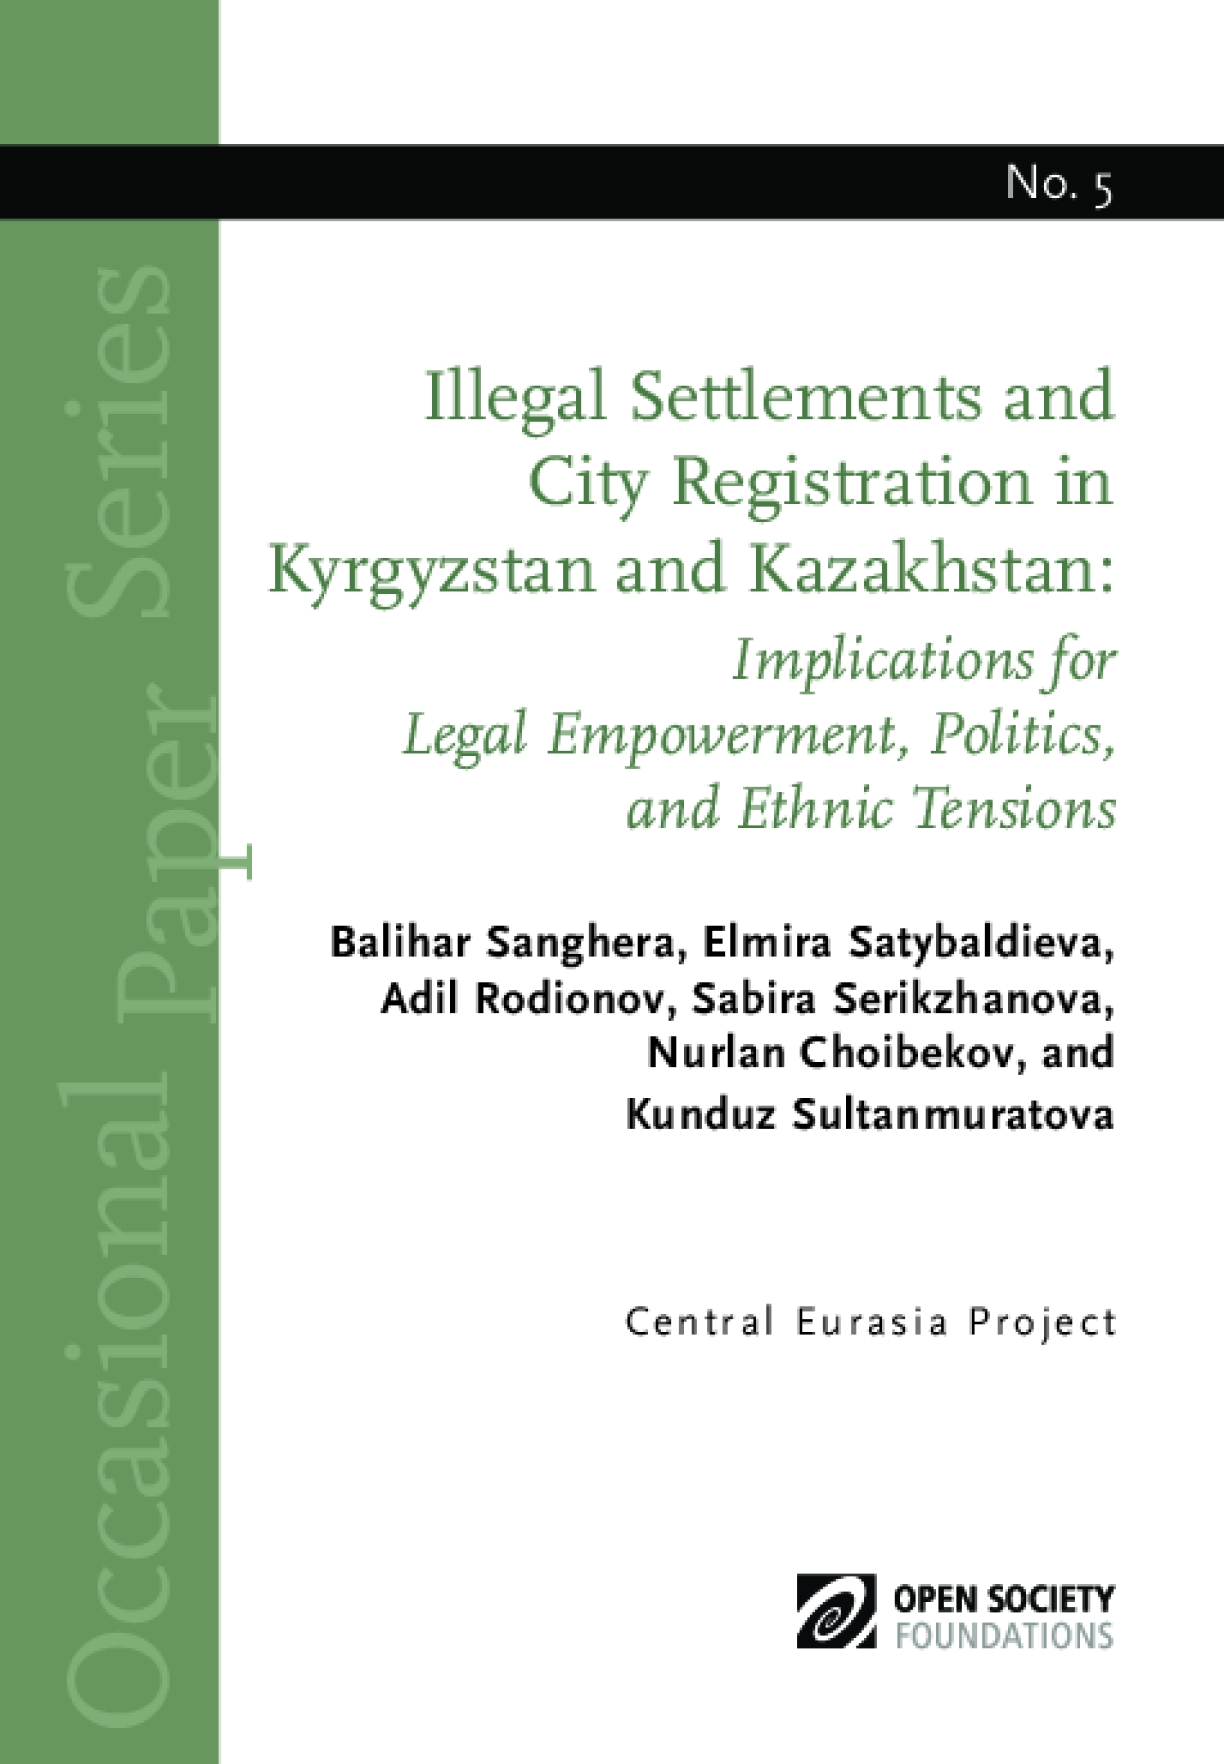 Illegal Settlements and City Registration in Kyrgyzstan and Kazakhstan: Implications for Legal Empowerment, Politics, and Ethnic Tensions